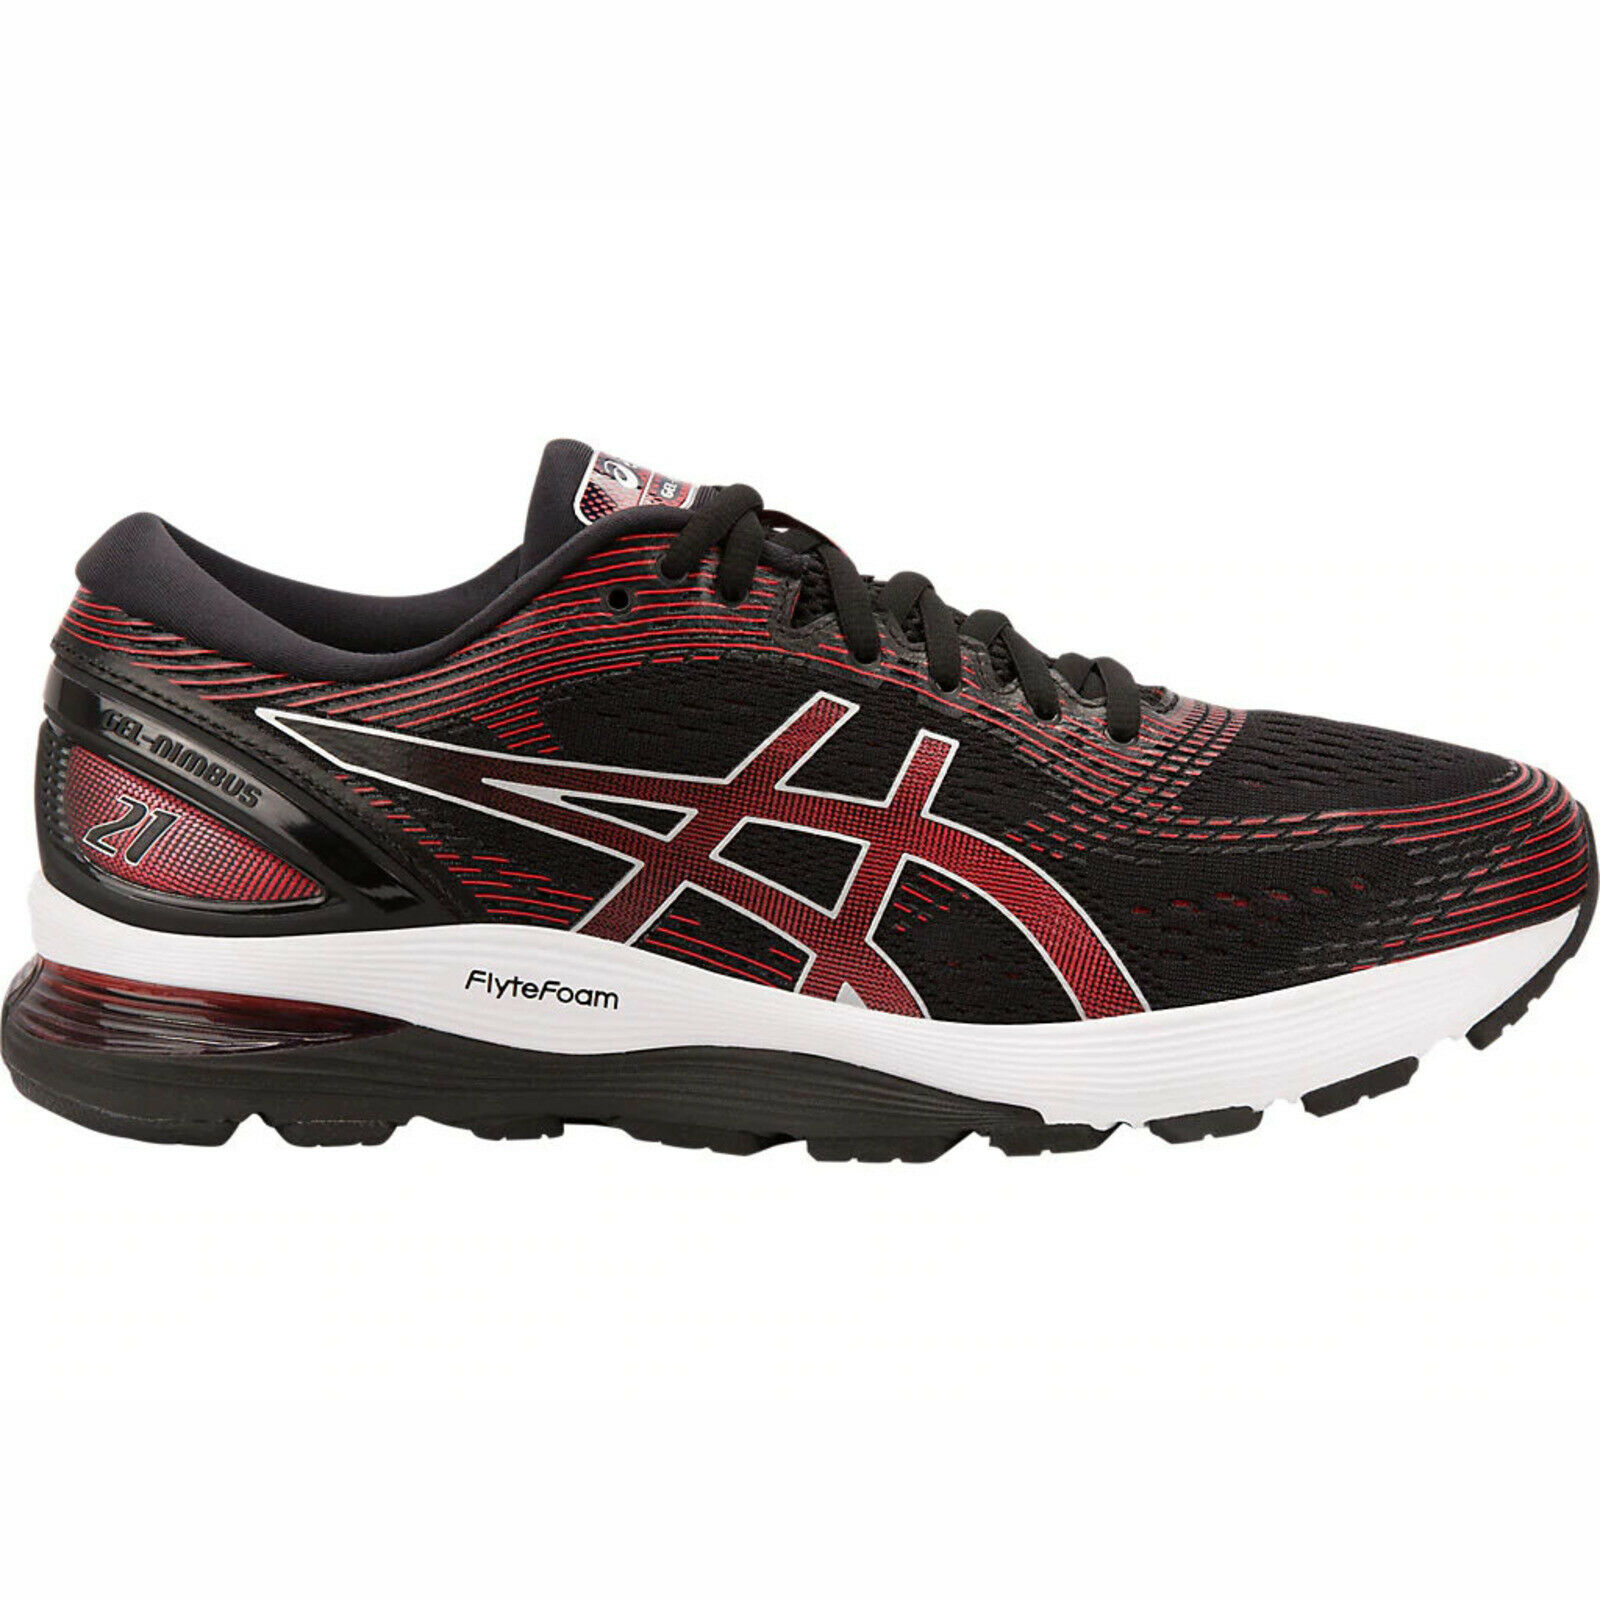 Asics GEL-Nimbus 21 [1011A169-002] Men Running shoes Black Classic Red